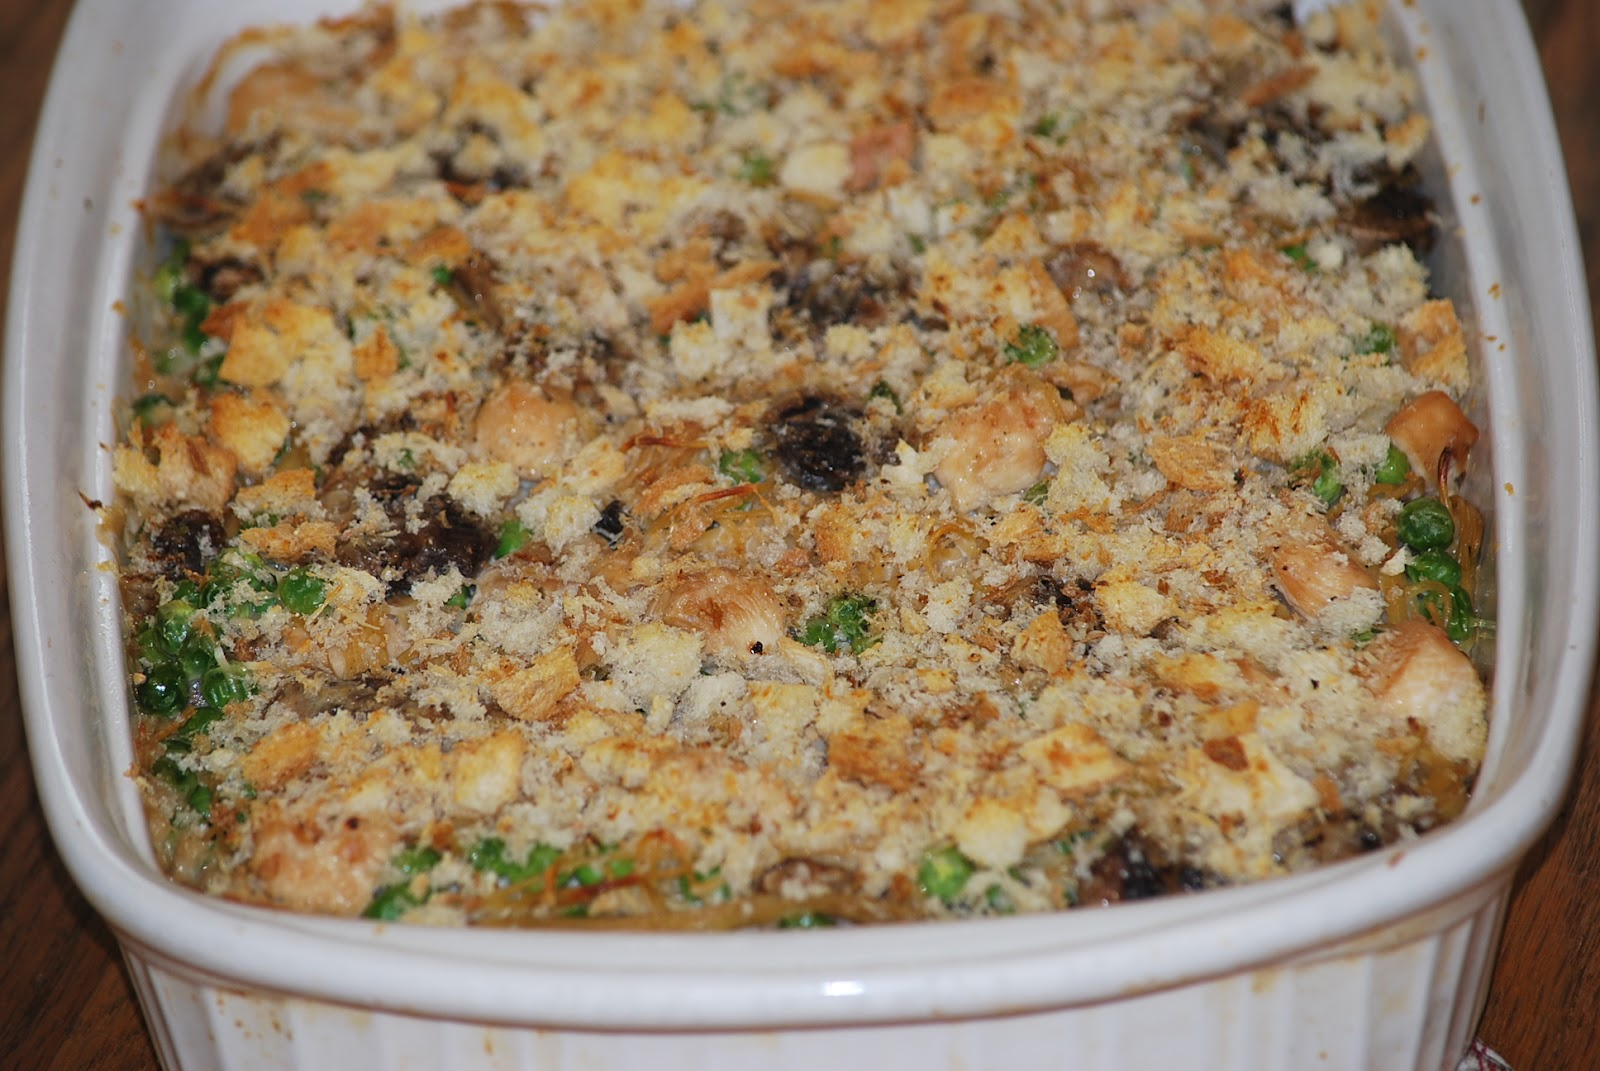 My story in recipes: Chicken Tetrazzini